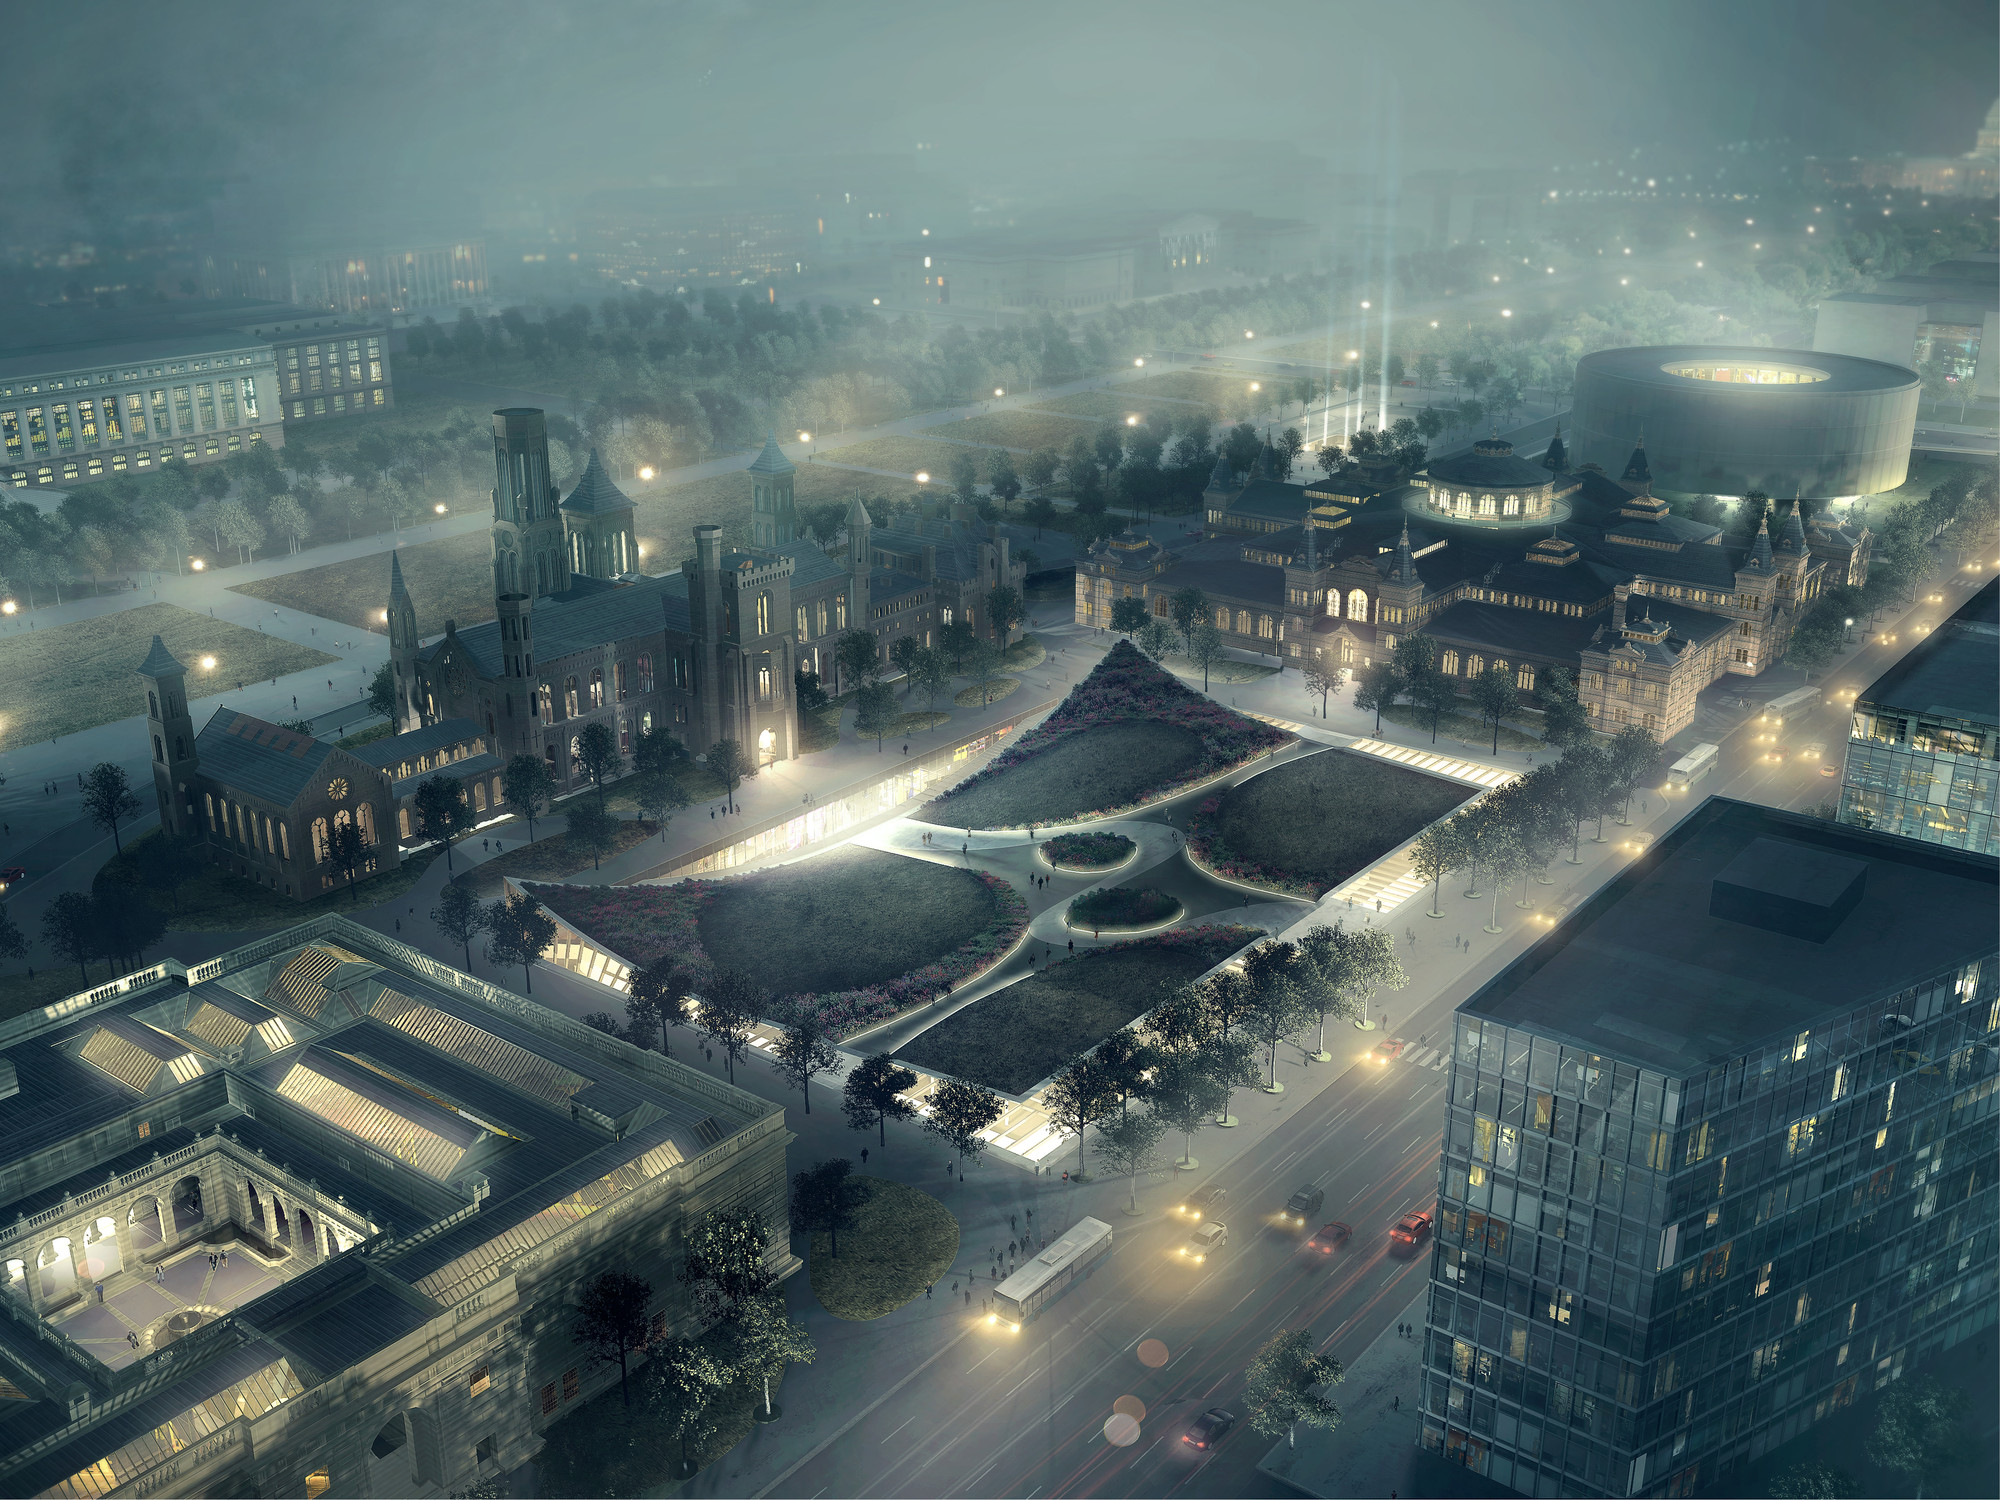 BIG Reveals 20-Year Restoration Plan for Washington DC's Smithsonian Campus, Courtesy of BIG